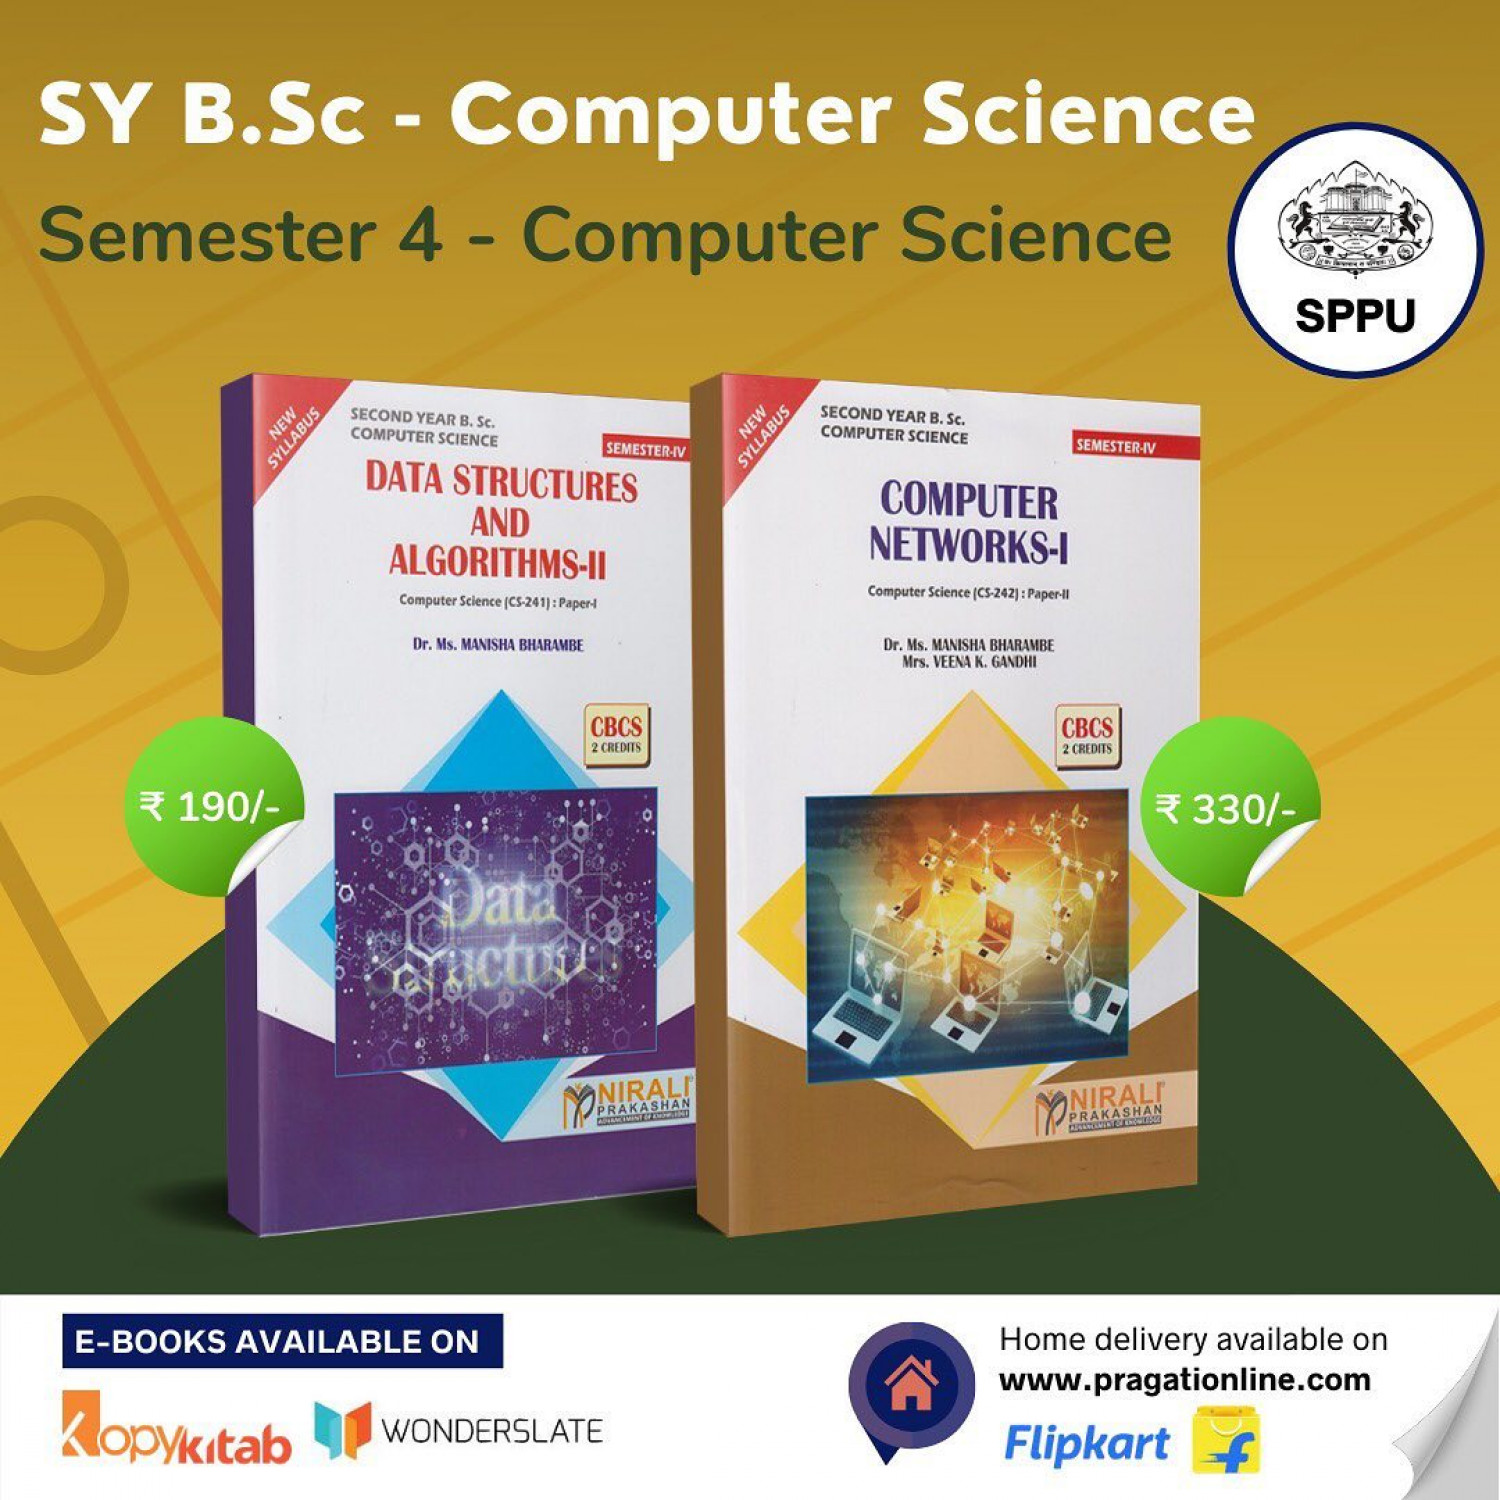 SY B.Sc. Computer Science Semester 4 Textbooks  Infographic